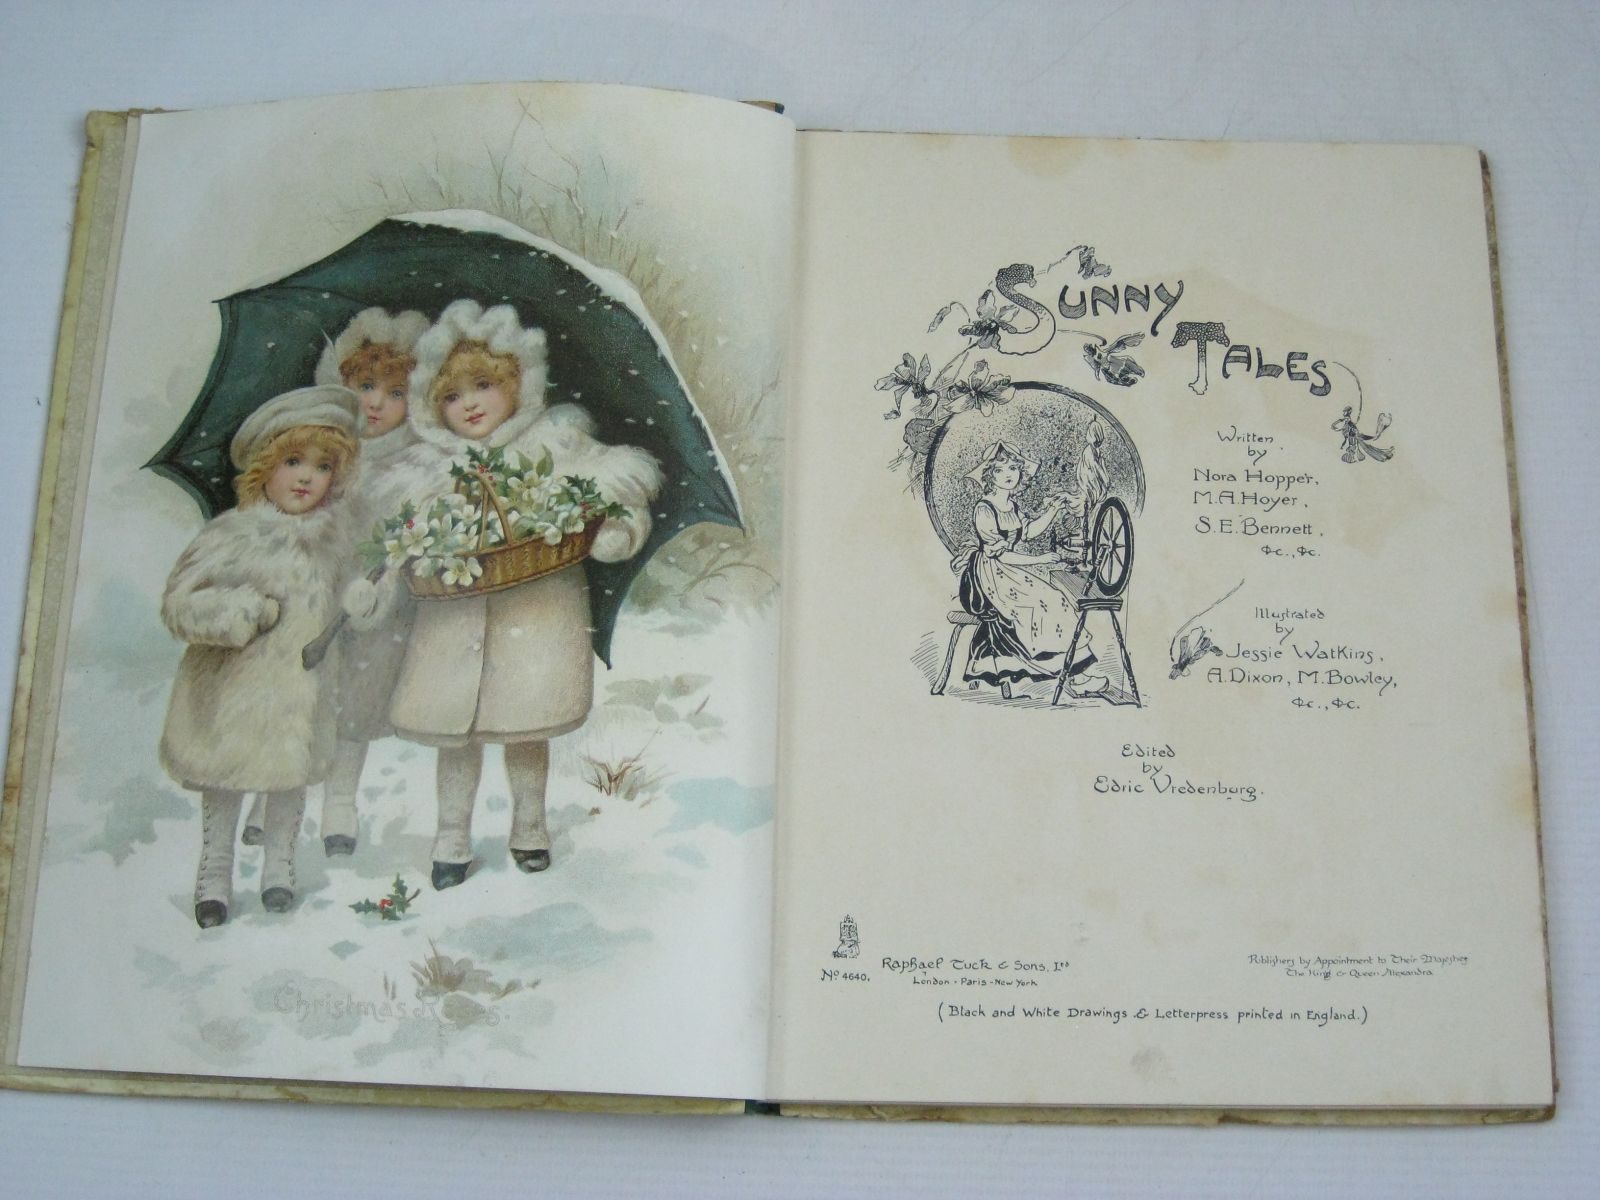 Photo of SUNNY TALES written by Hopper, Nora Hoyer, M.A. Bennett, S.E. et al, Vredenburg, Edric illustrated by Watkins, Jessie Dixon, A. Bowley, M. et al., published by Raphael Tuck & Sons Ltd. (STOCK CODE: 1505282)  for sale by Stella & Rose's Books